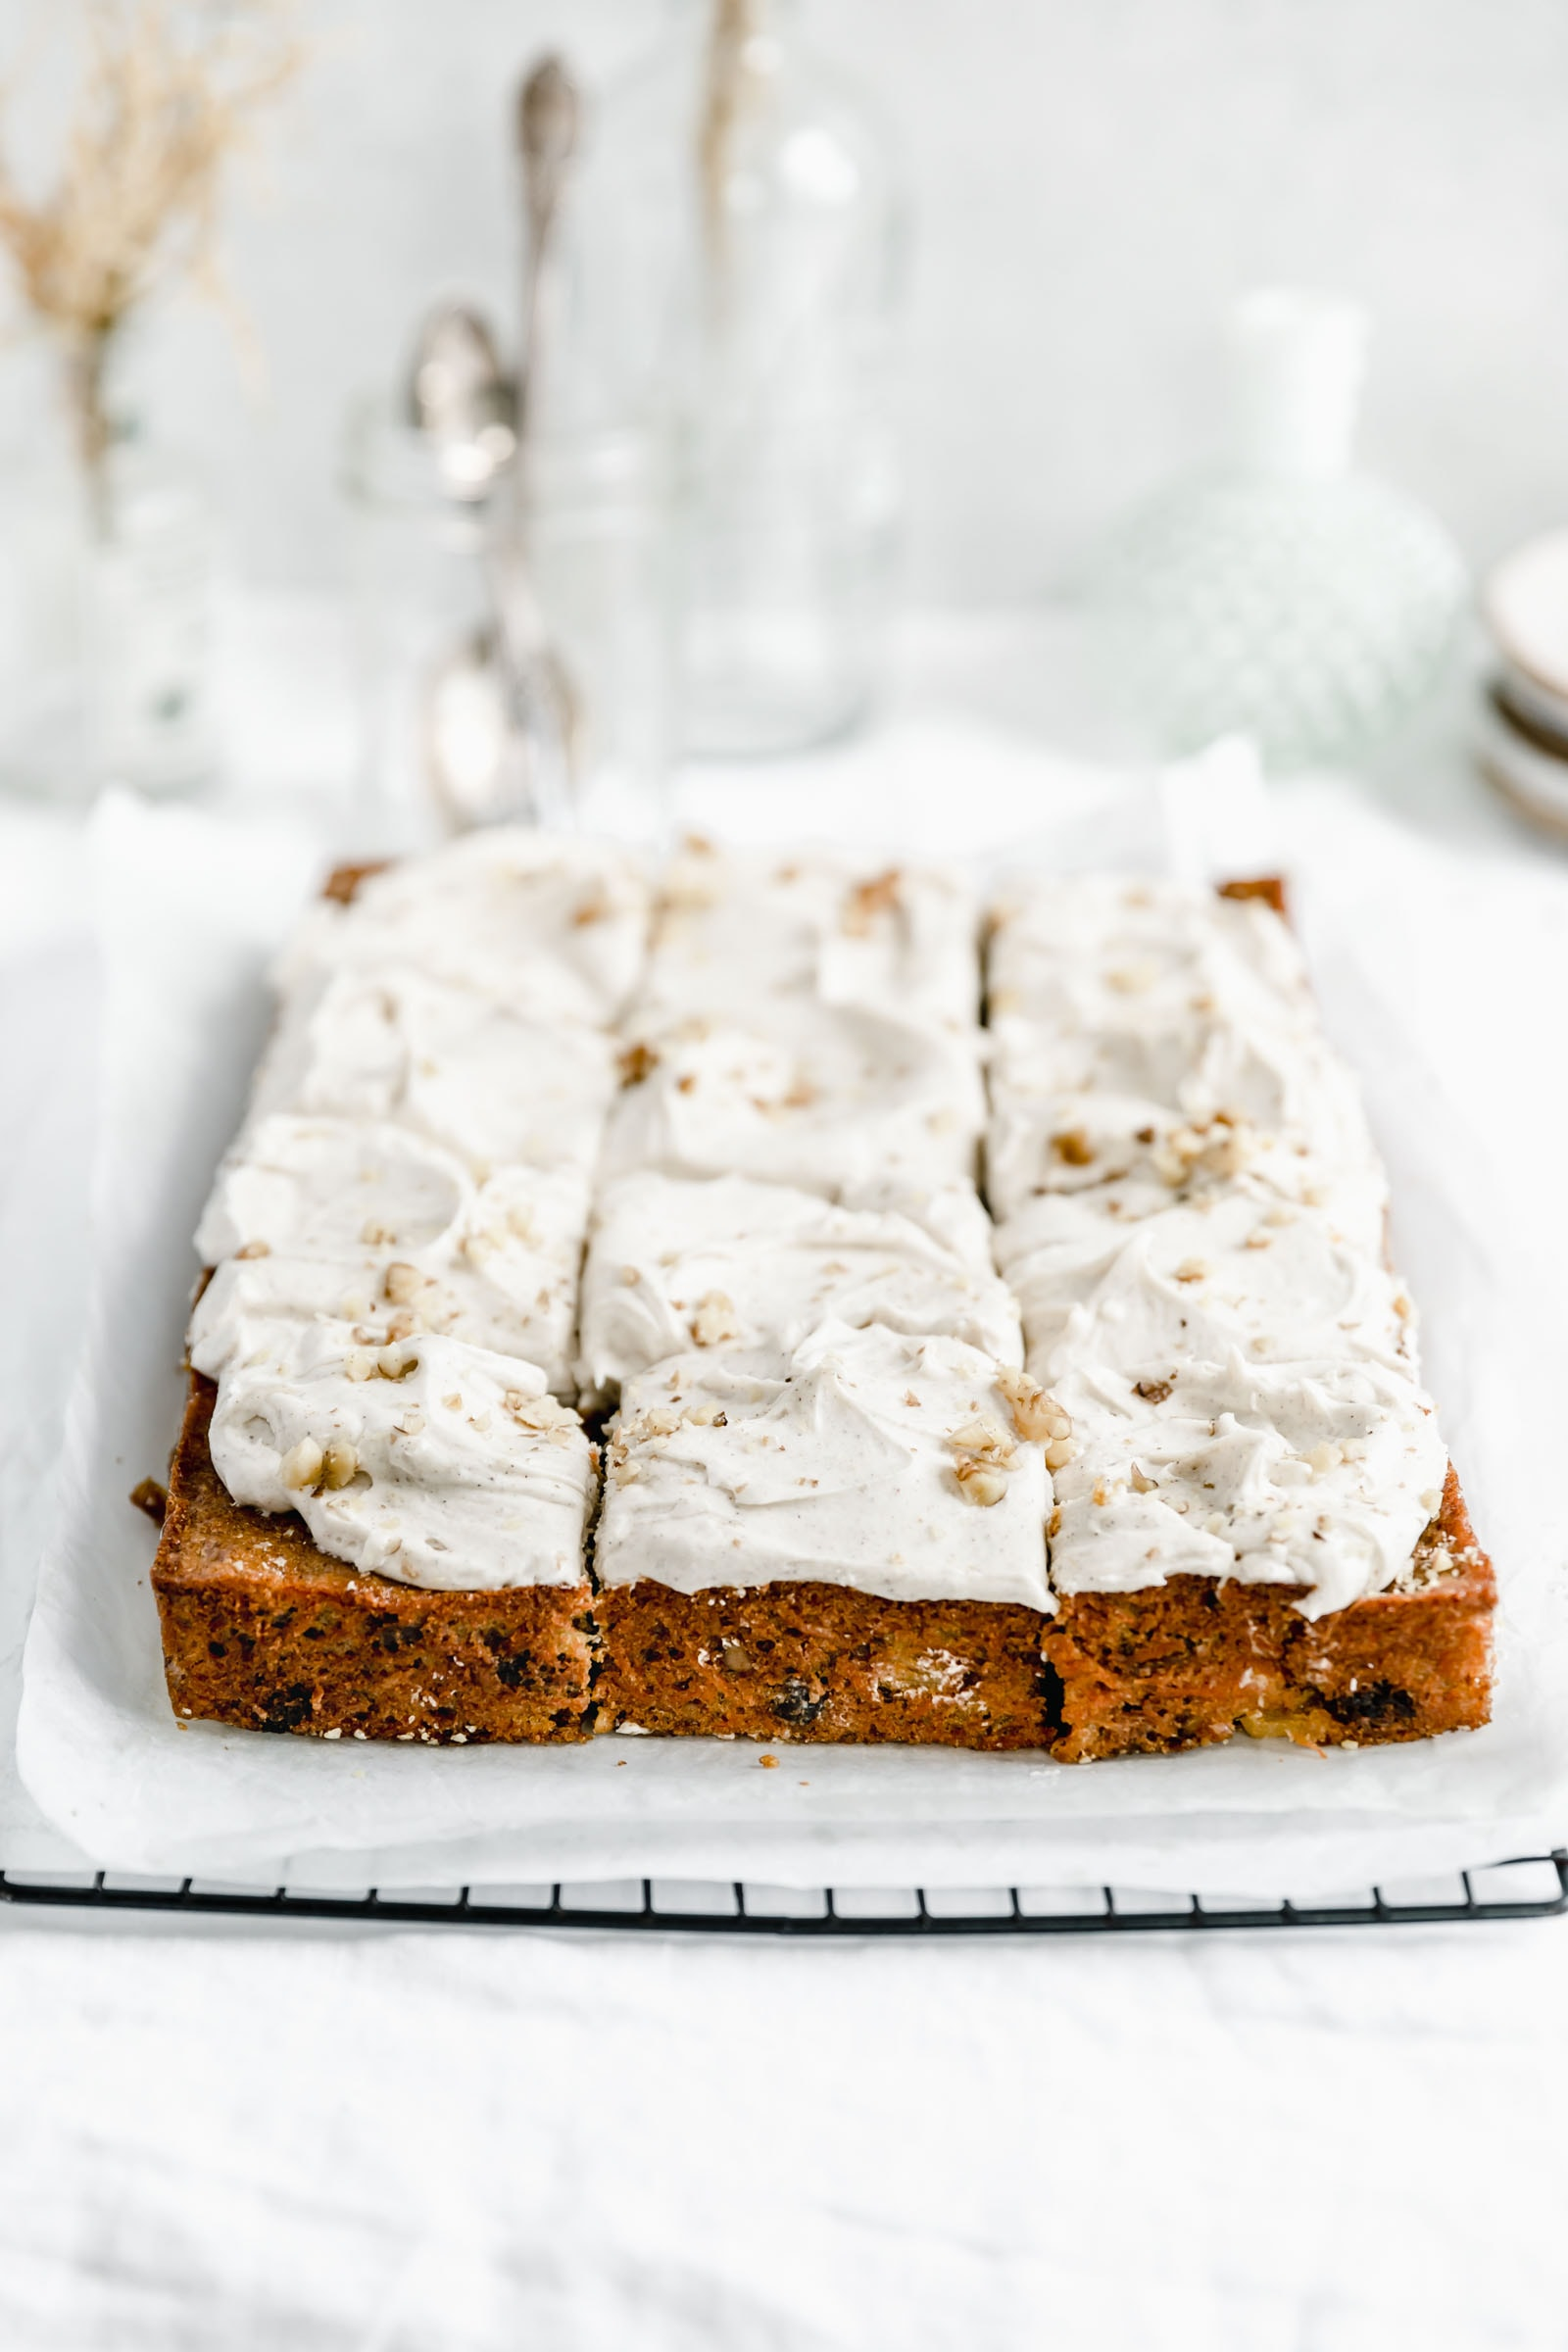 carrot sheet cake with a thick layer of cream cheese frosting cut into 12 pieces